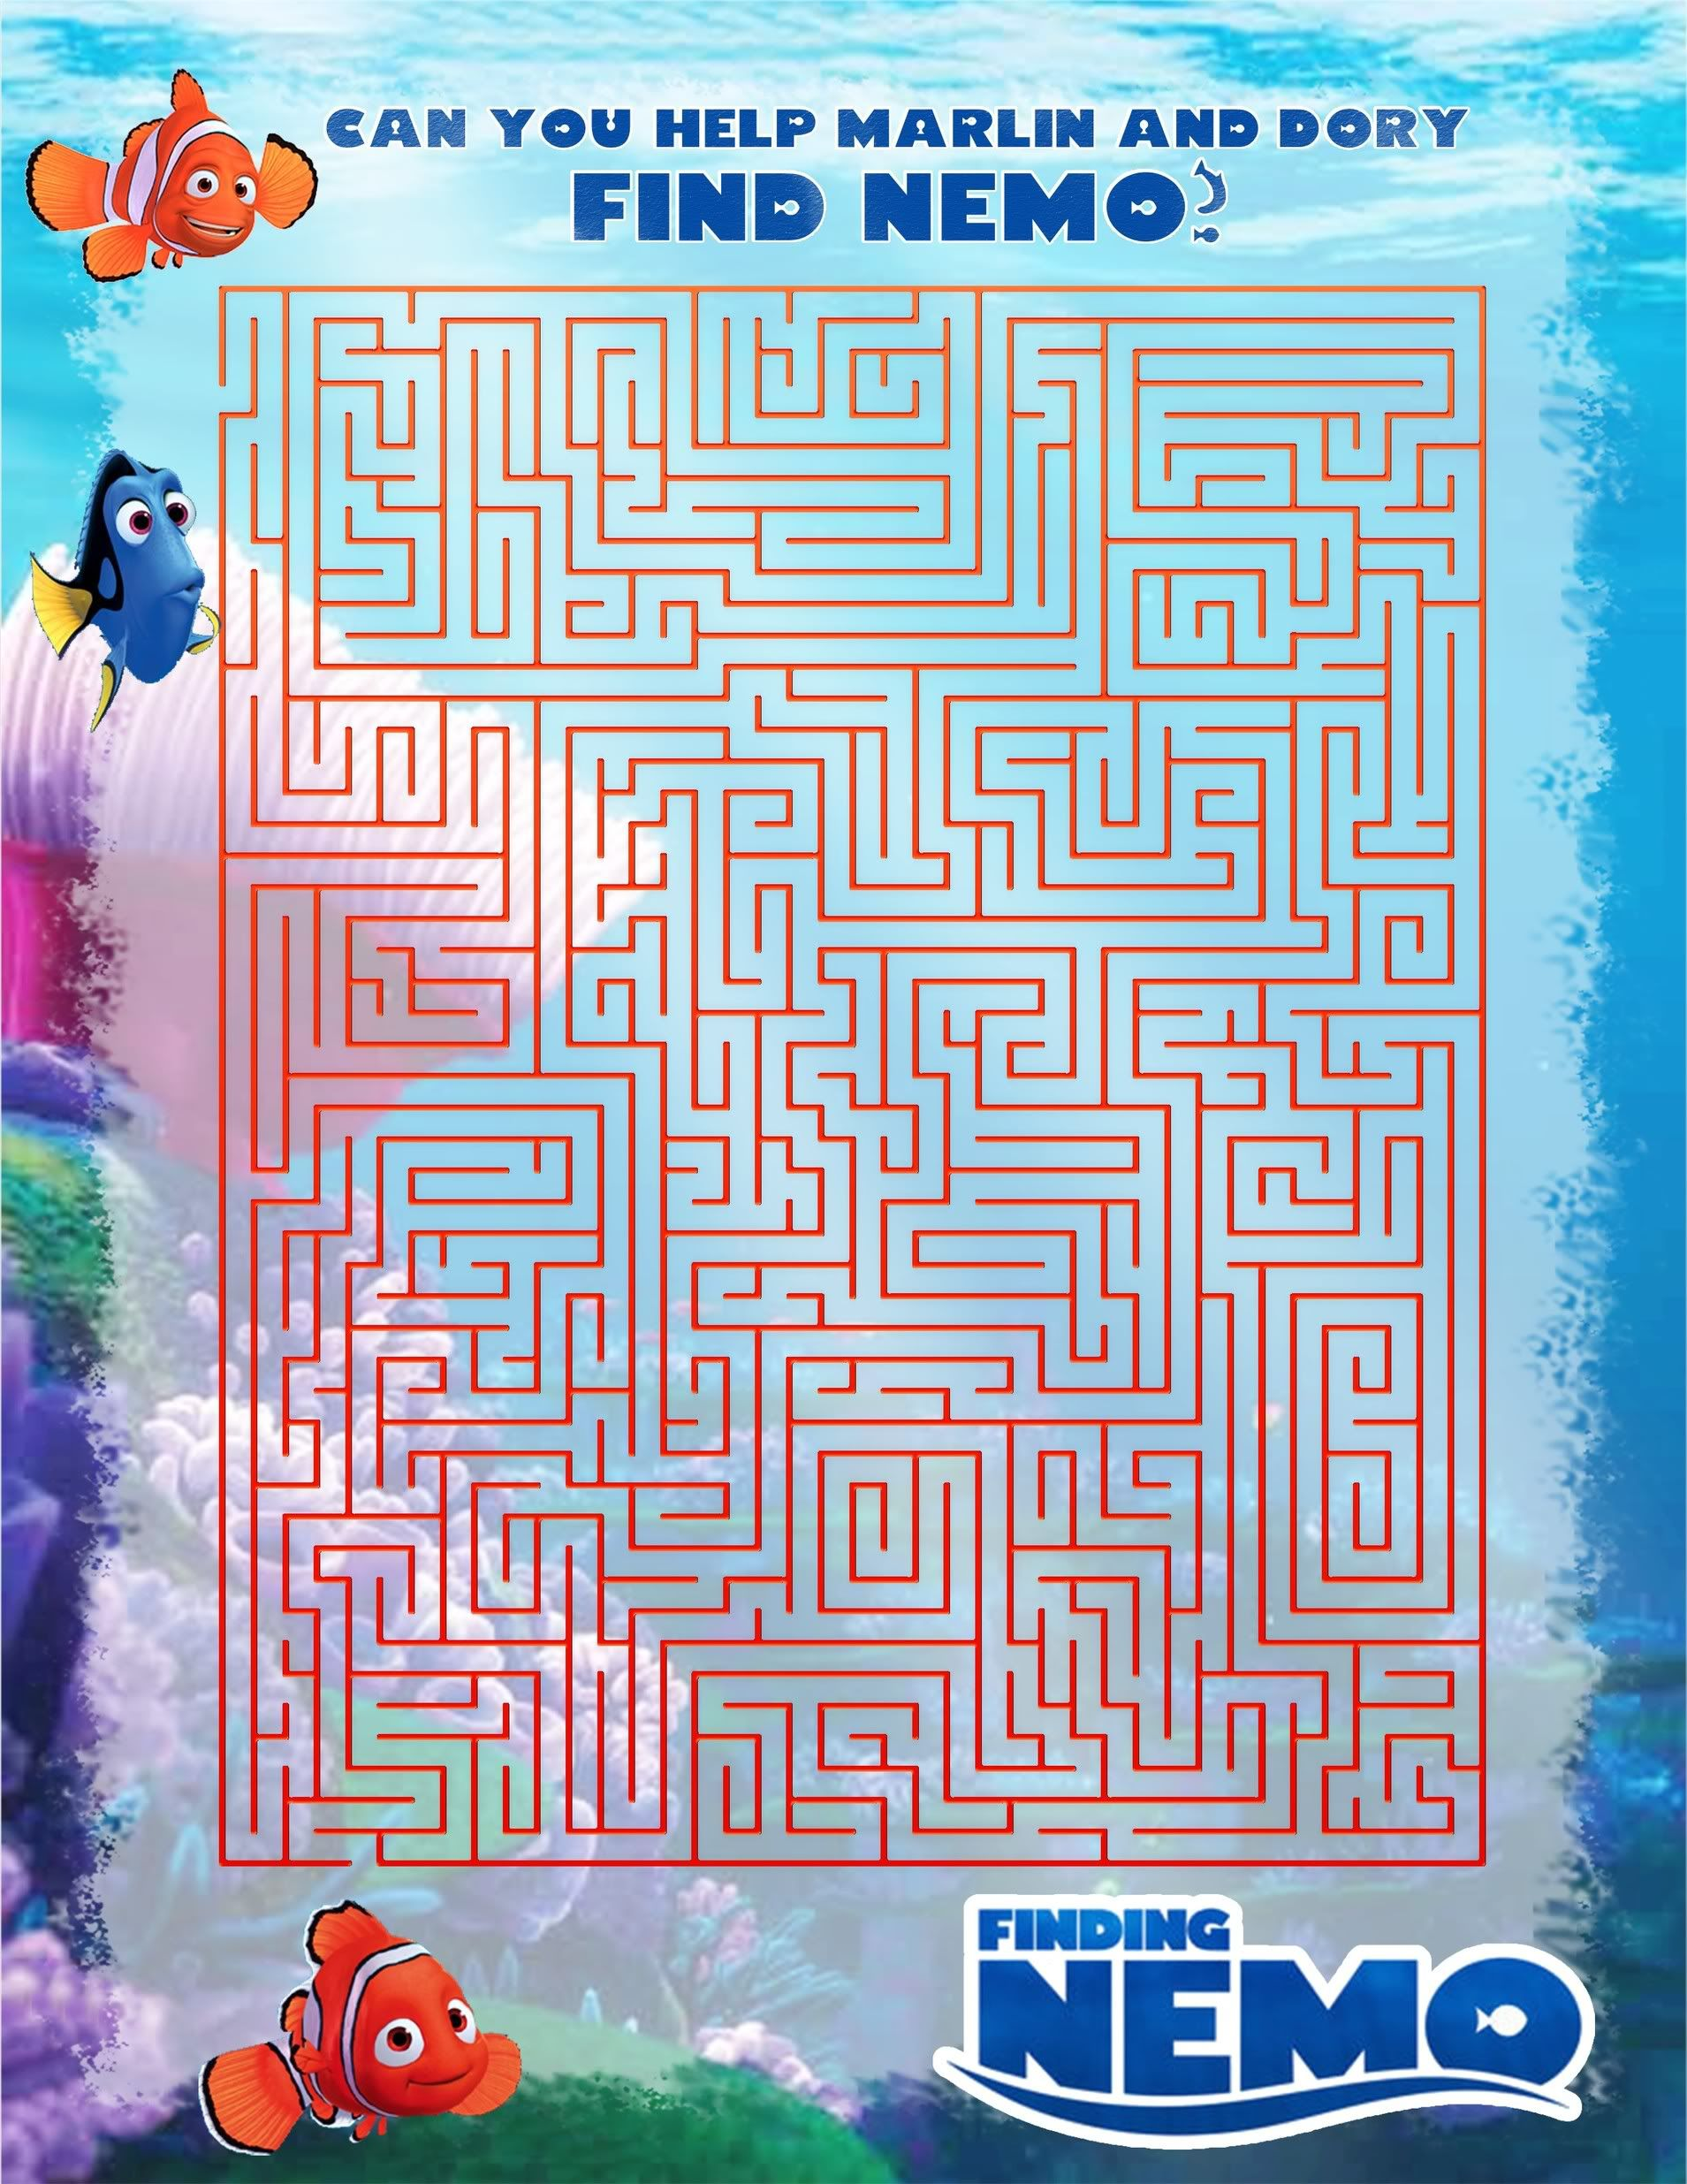 Nemo Maze Photo This Photo Was Uploaded By Donatalie